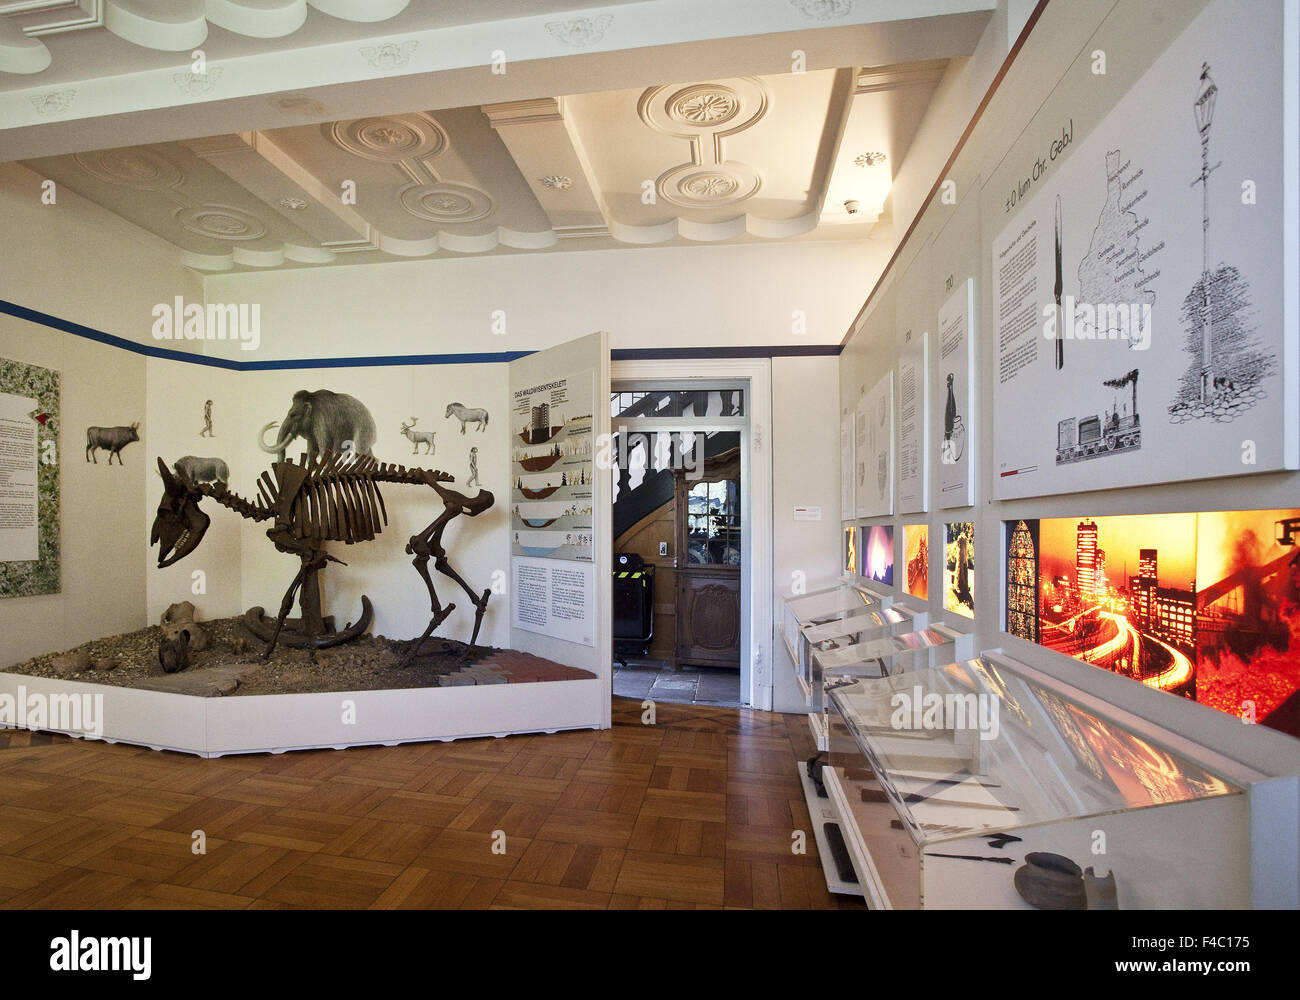 City Museum, Gladbeck, Germany - Stock Image